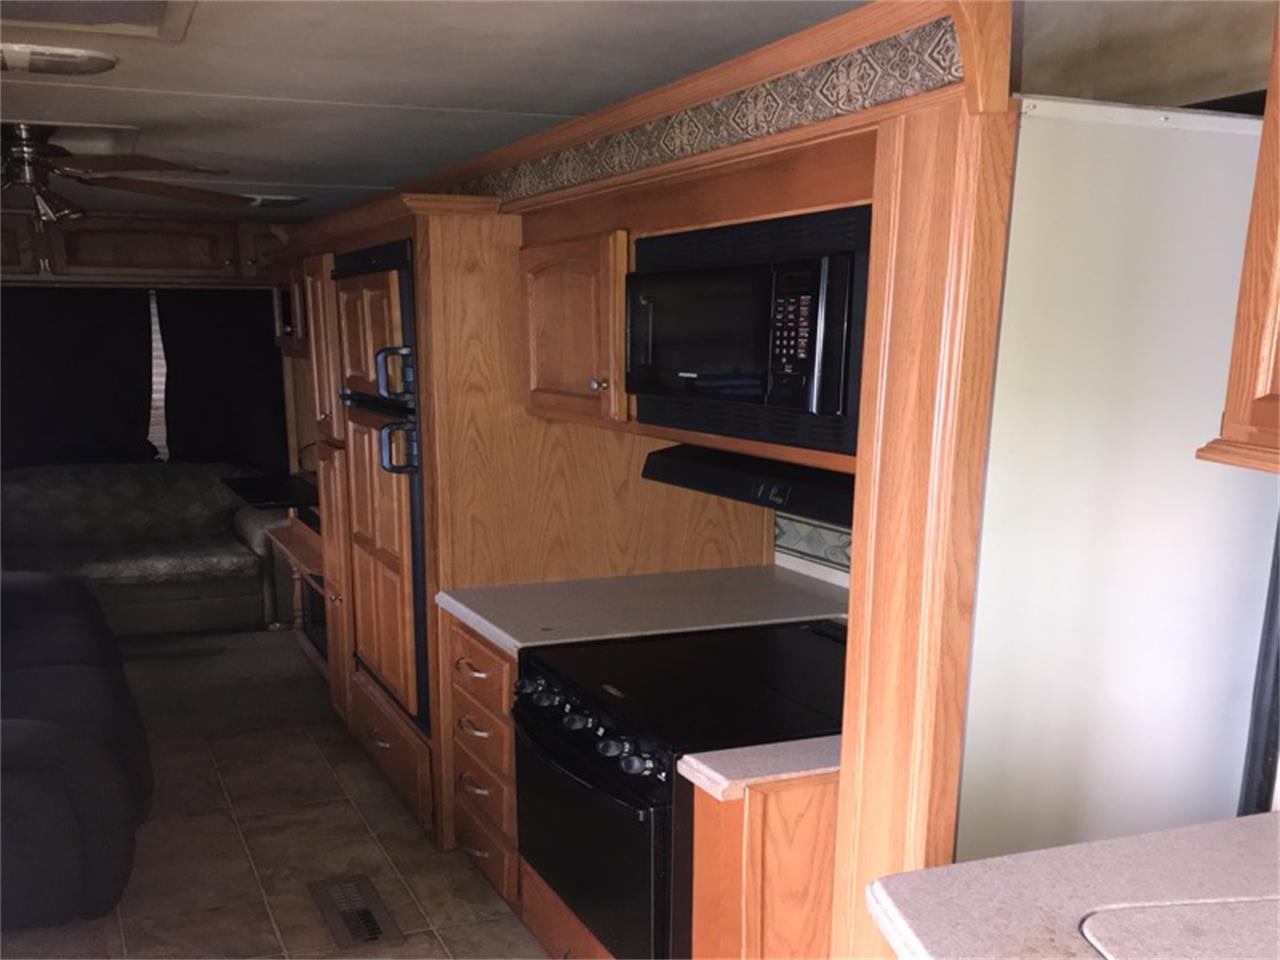 2007 Heartland Recreational Vehicle for sale in Dickson, TN – photo 16